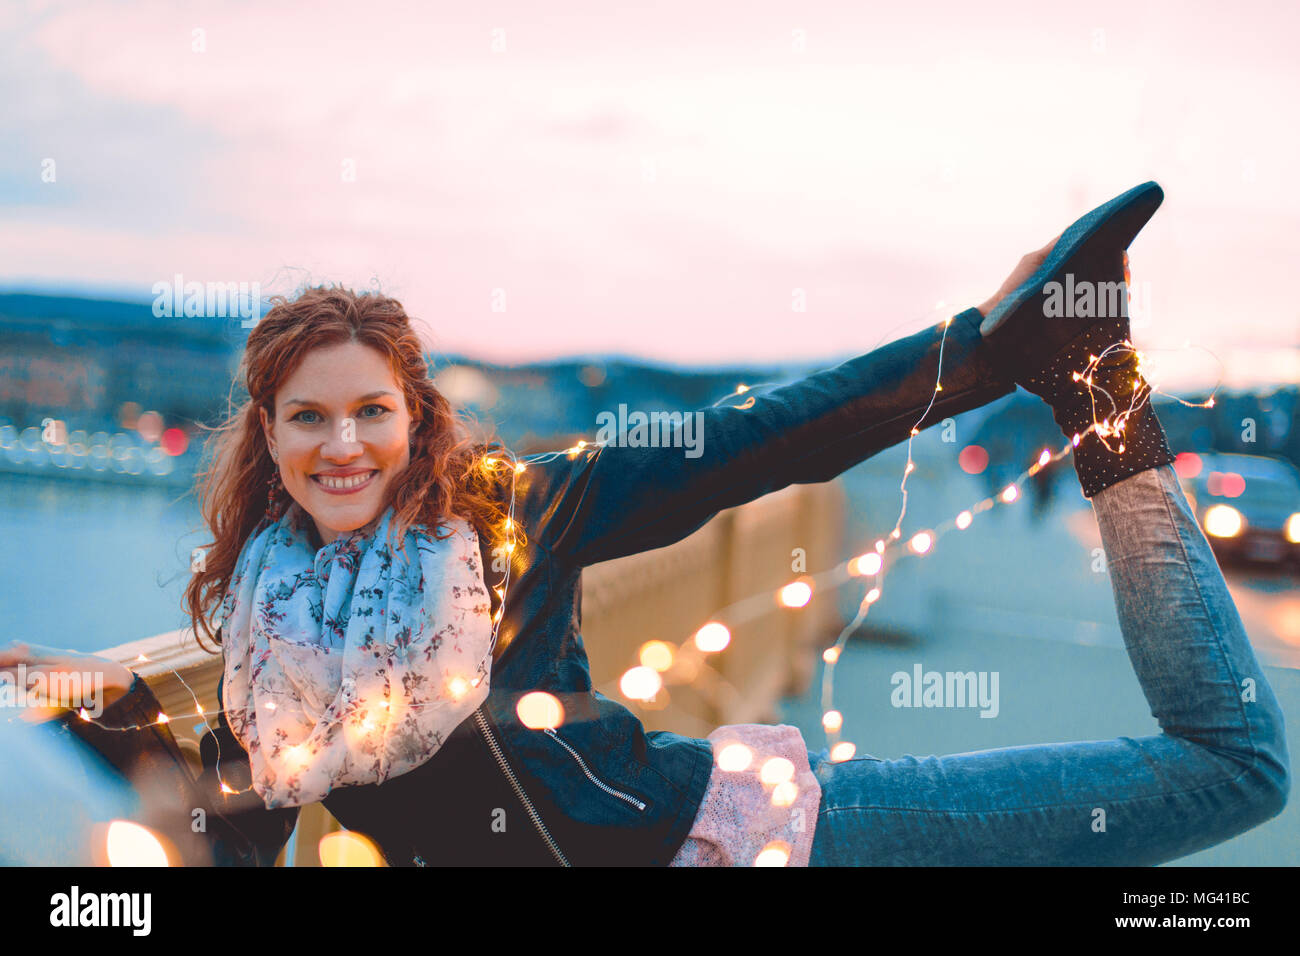 Young redhead woman posing with fairy lights outdoors and smile, teal and orange style - Stock Image